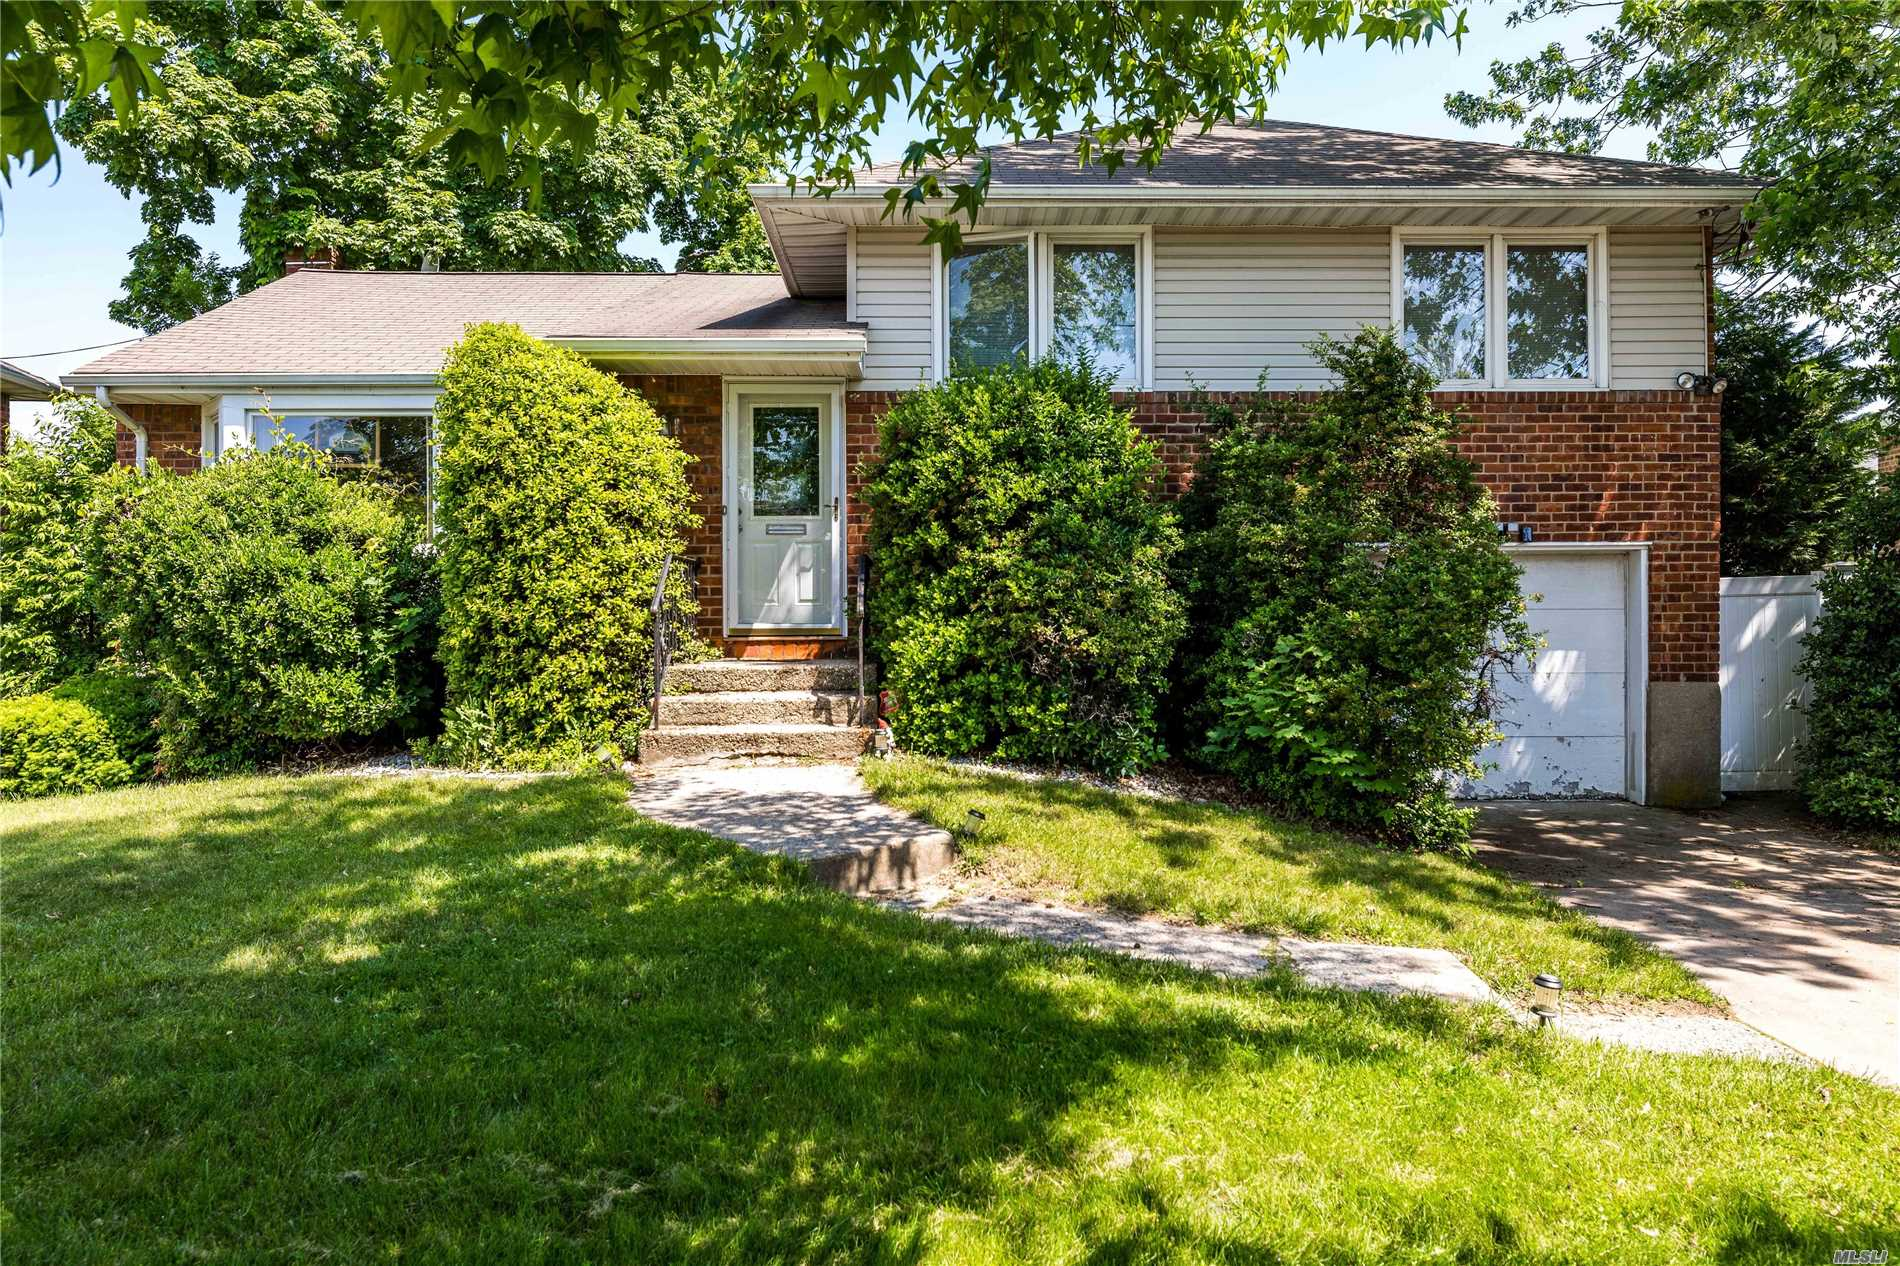 Split Level Home On Low Traffic Street. Close To Shopping And Dining, As Well As Transportation.